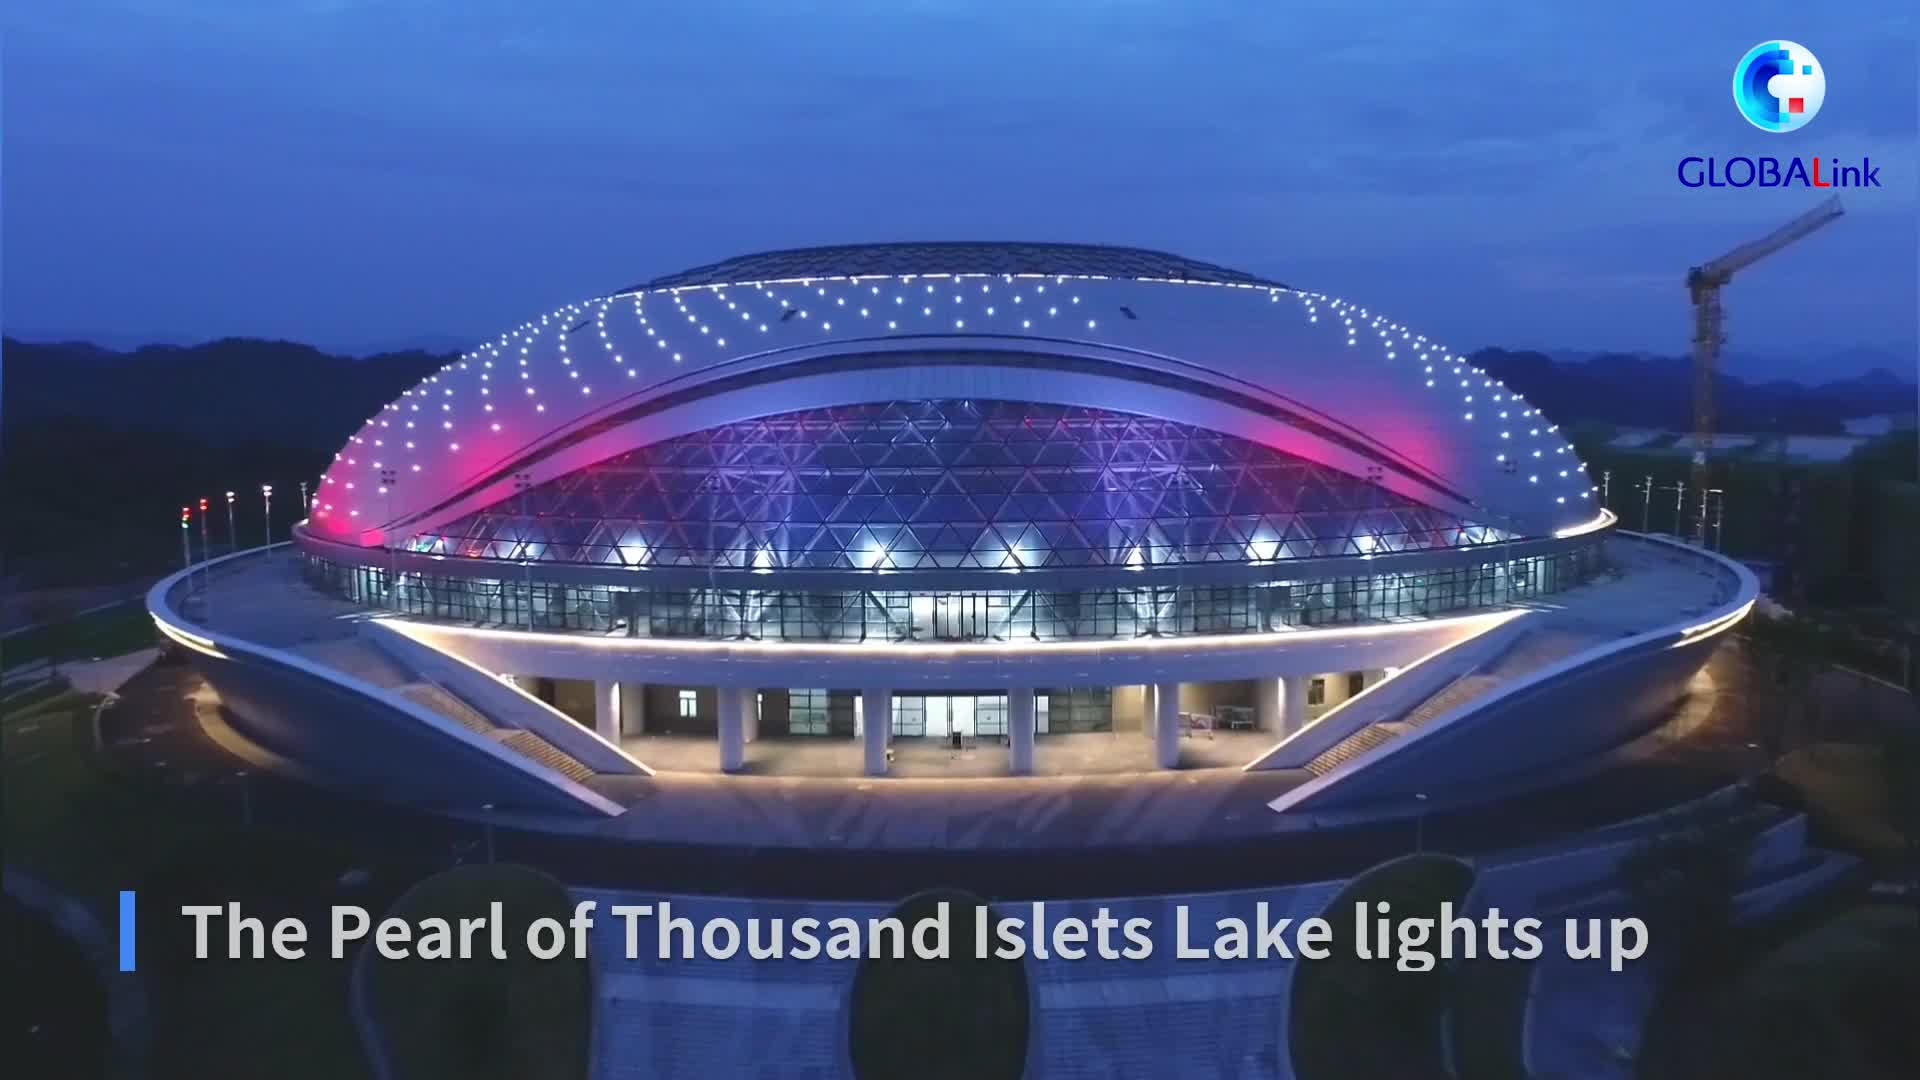 GLOBALink| The Pearl of Thousand Islets Lake lights up